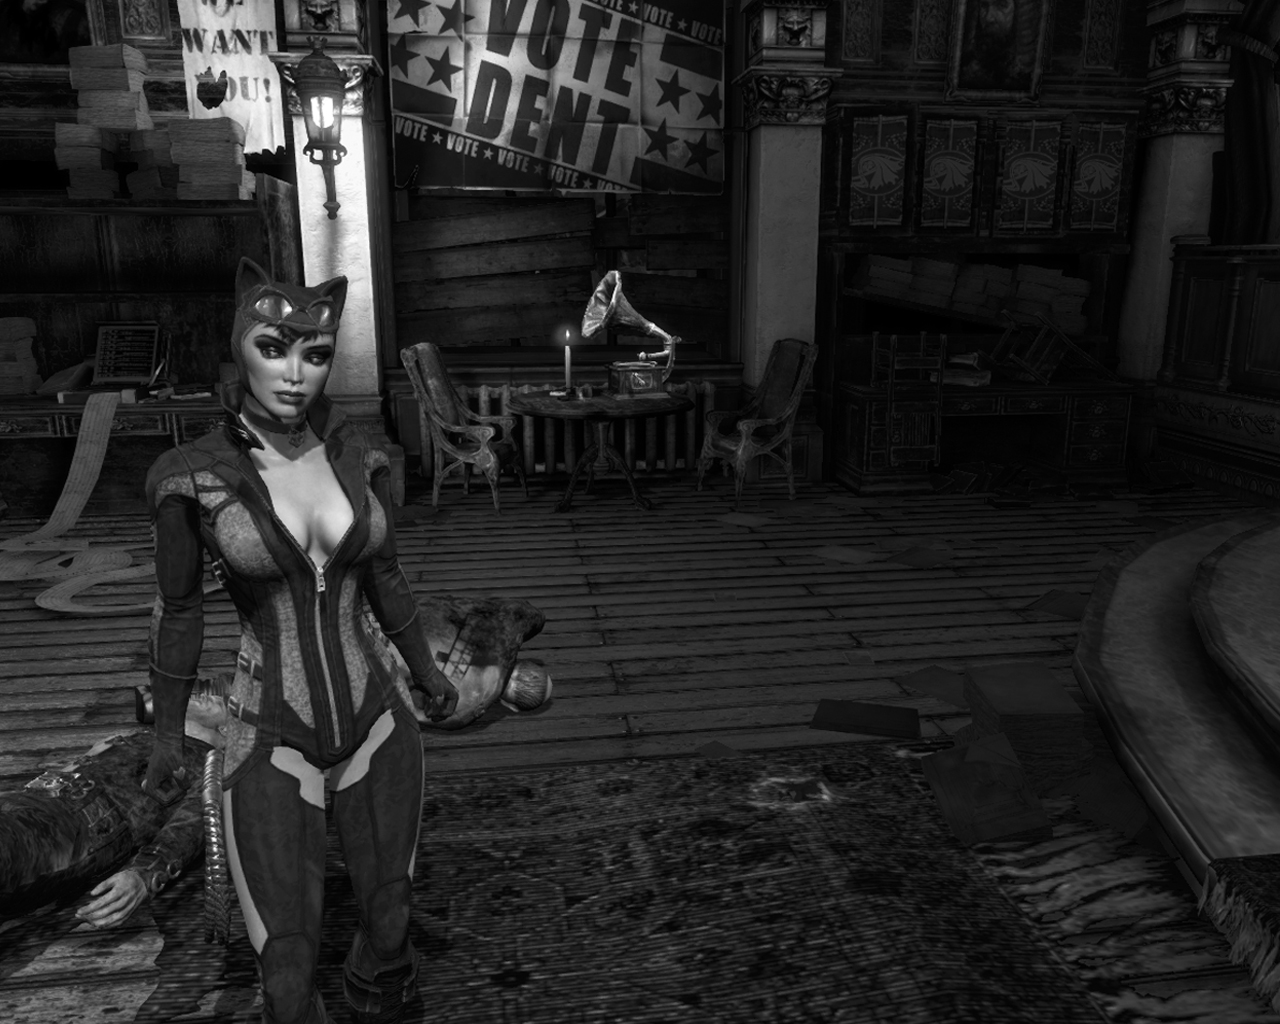 Catwoman arkham city unzipping her suit xvideos fucking extreme slave